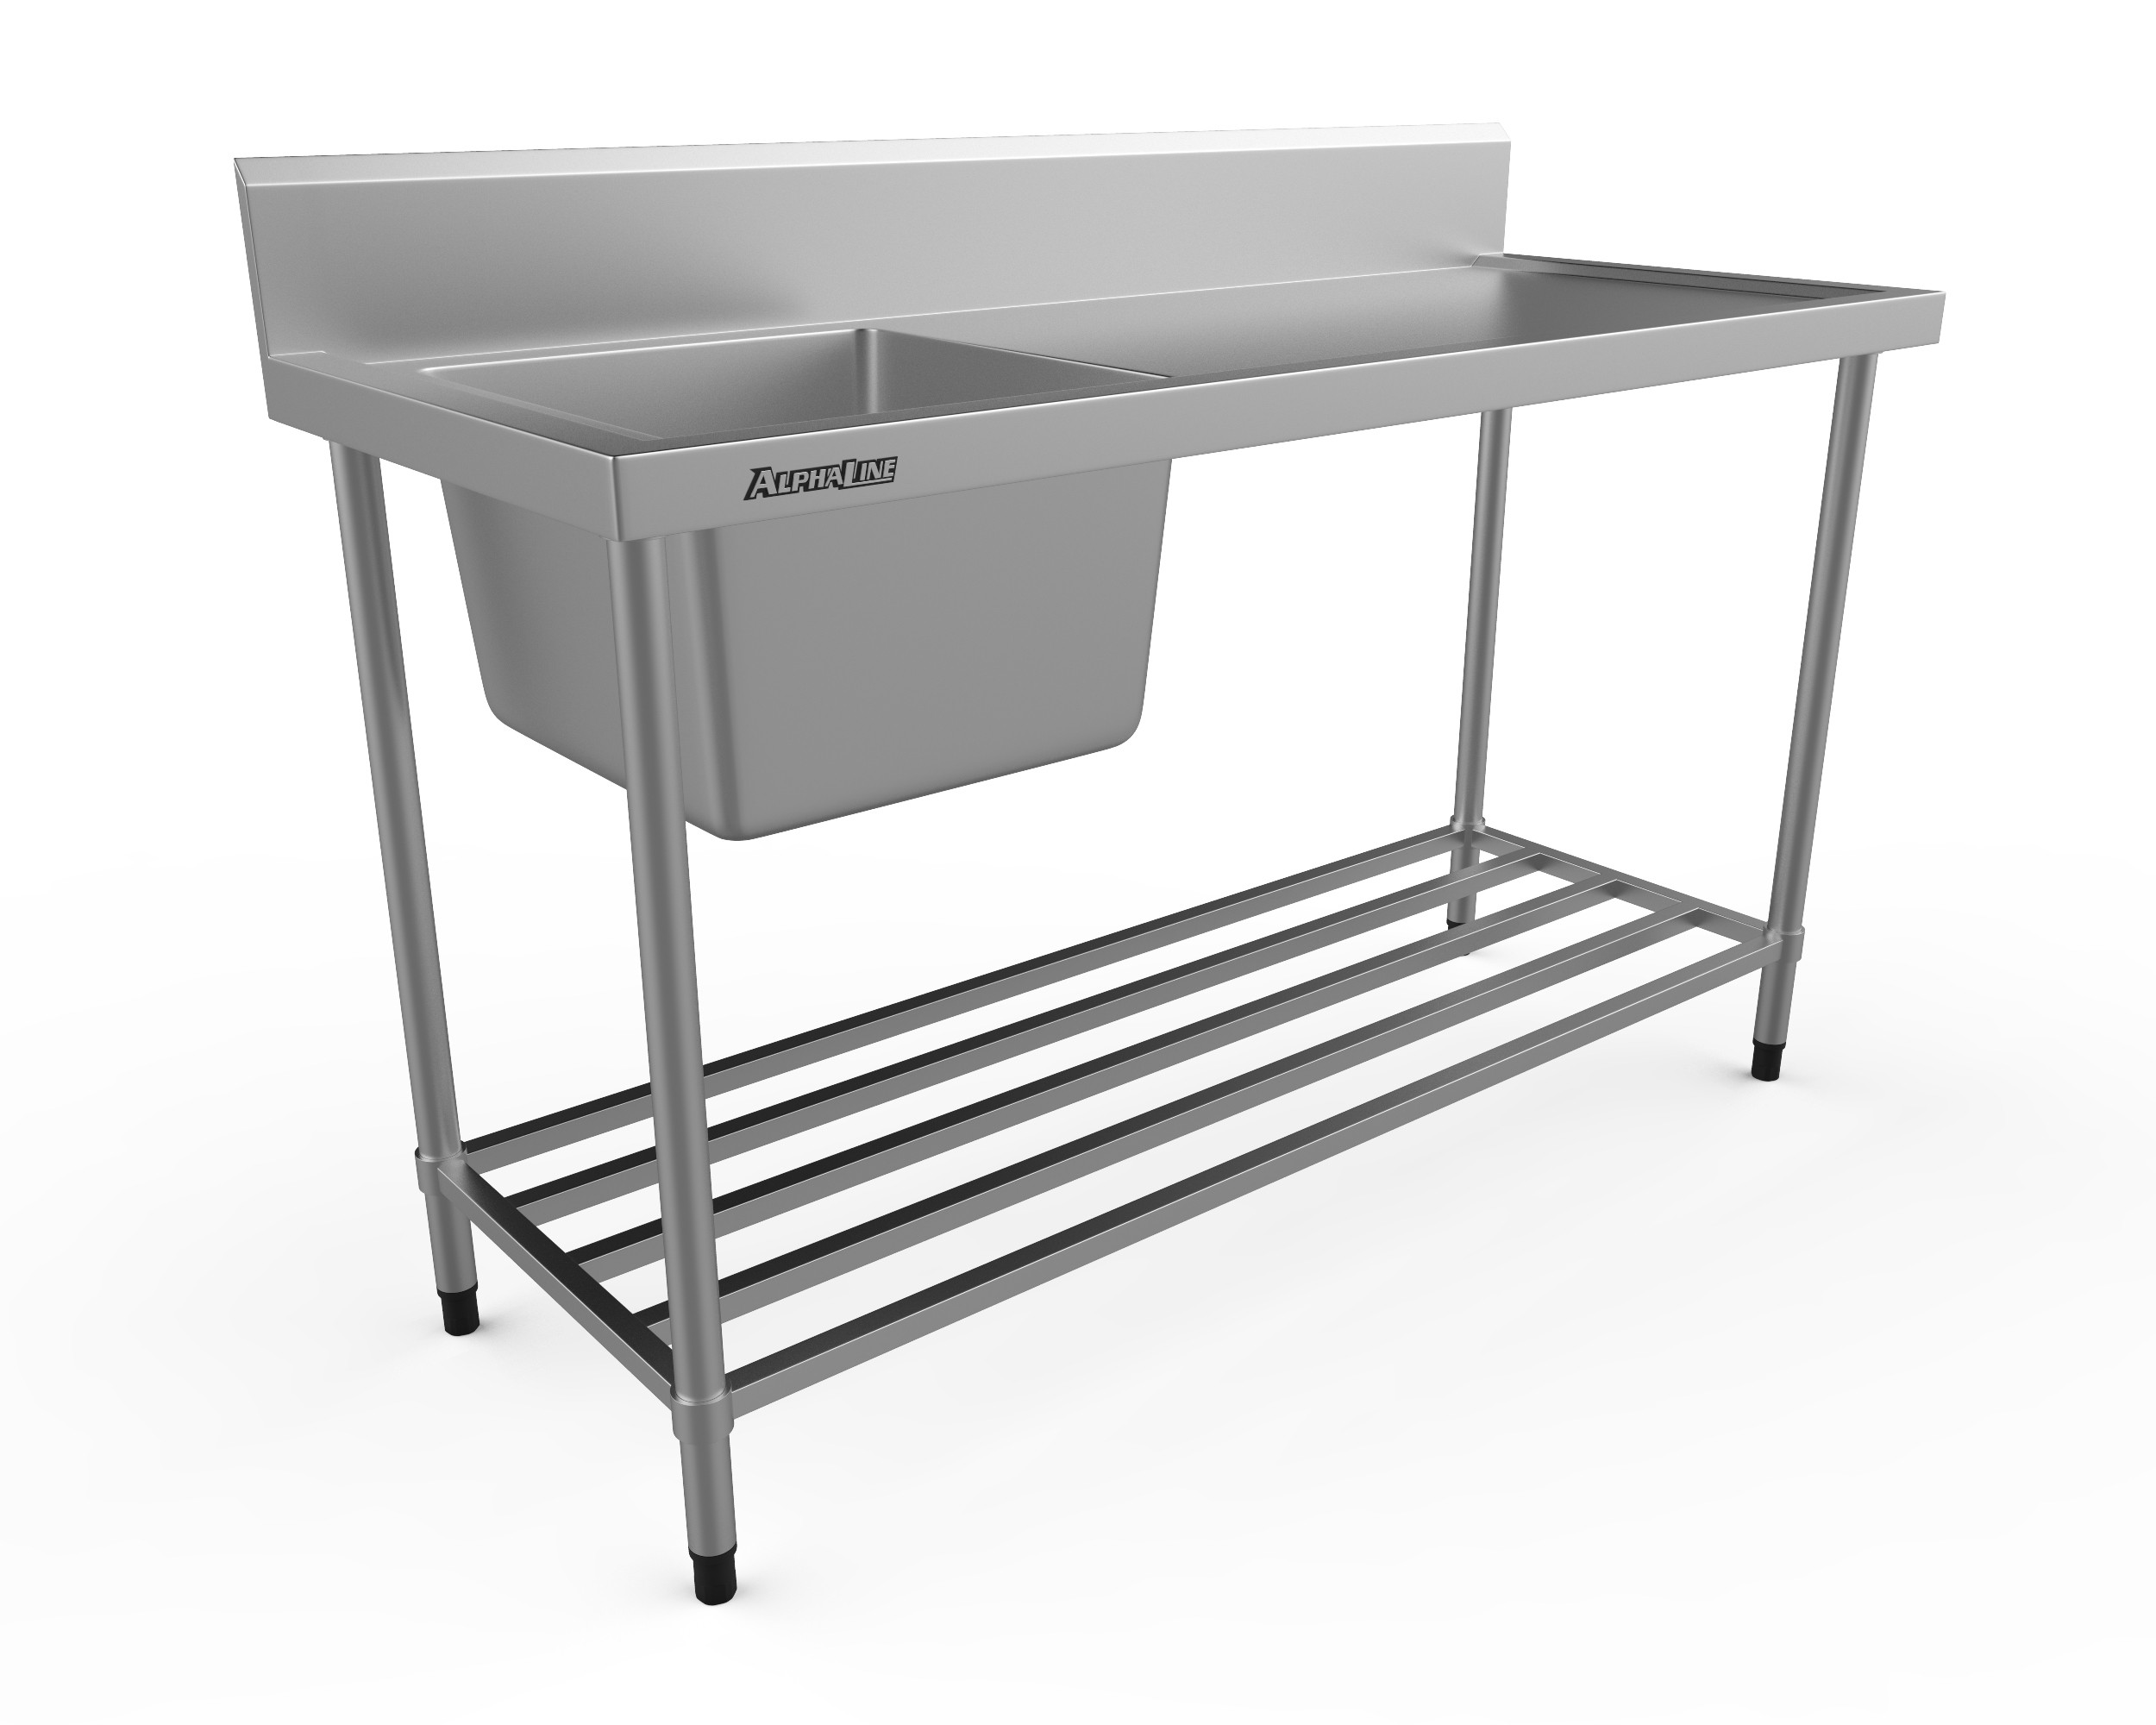 Stainless Steel Sink Bench - 1500 x 600 Left Bowl - XS1-60150L